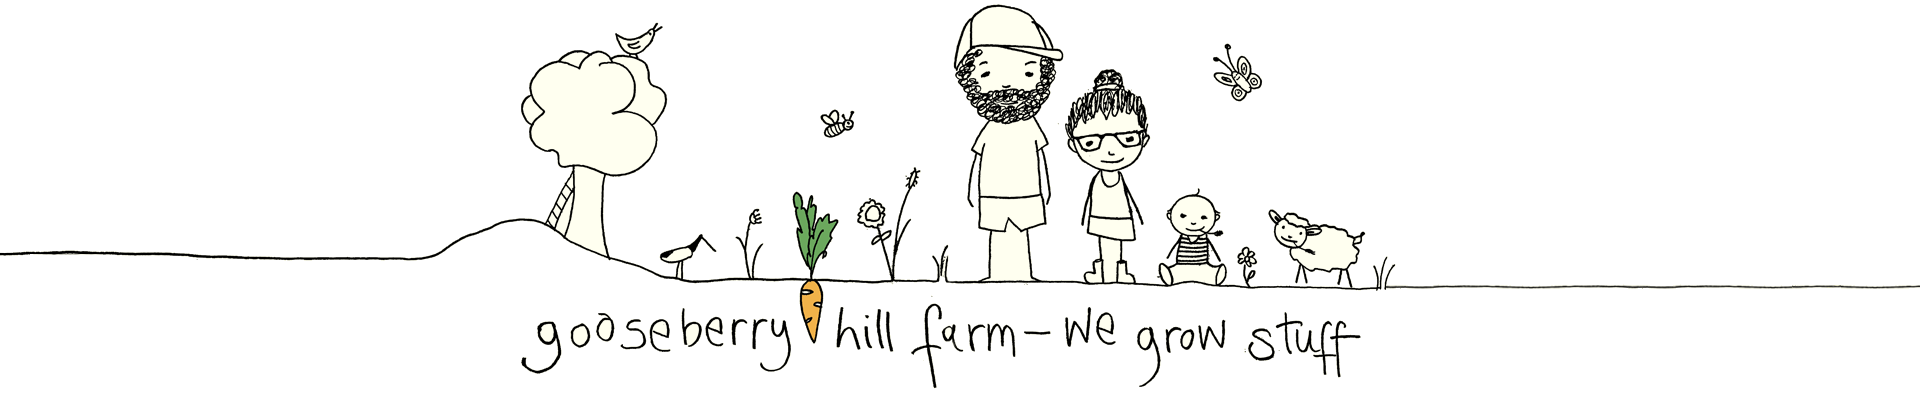 Gooseberry Hill Farm